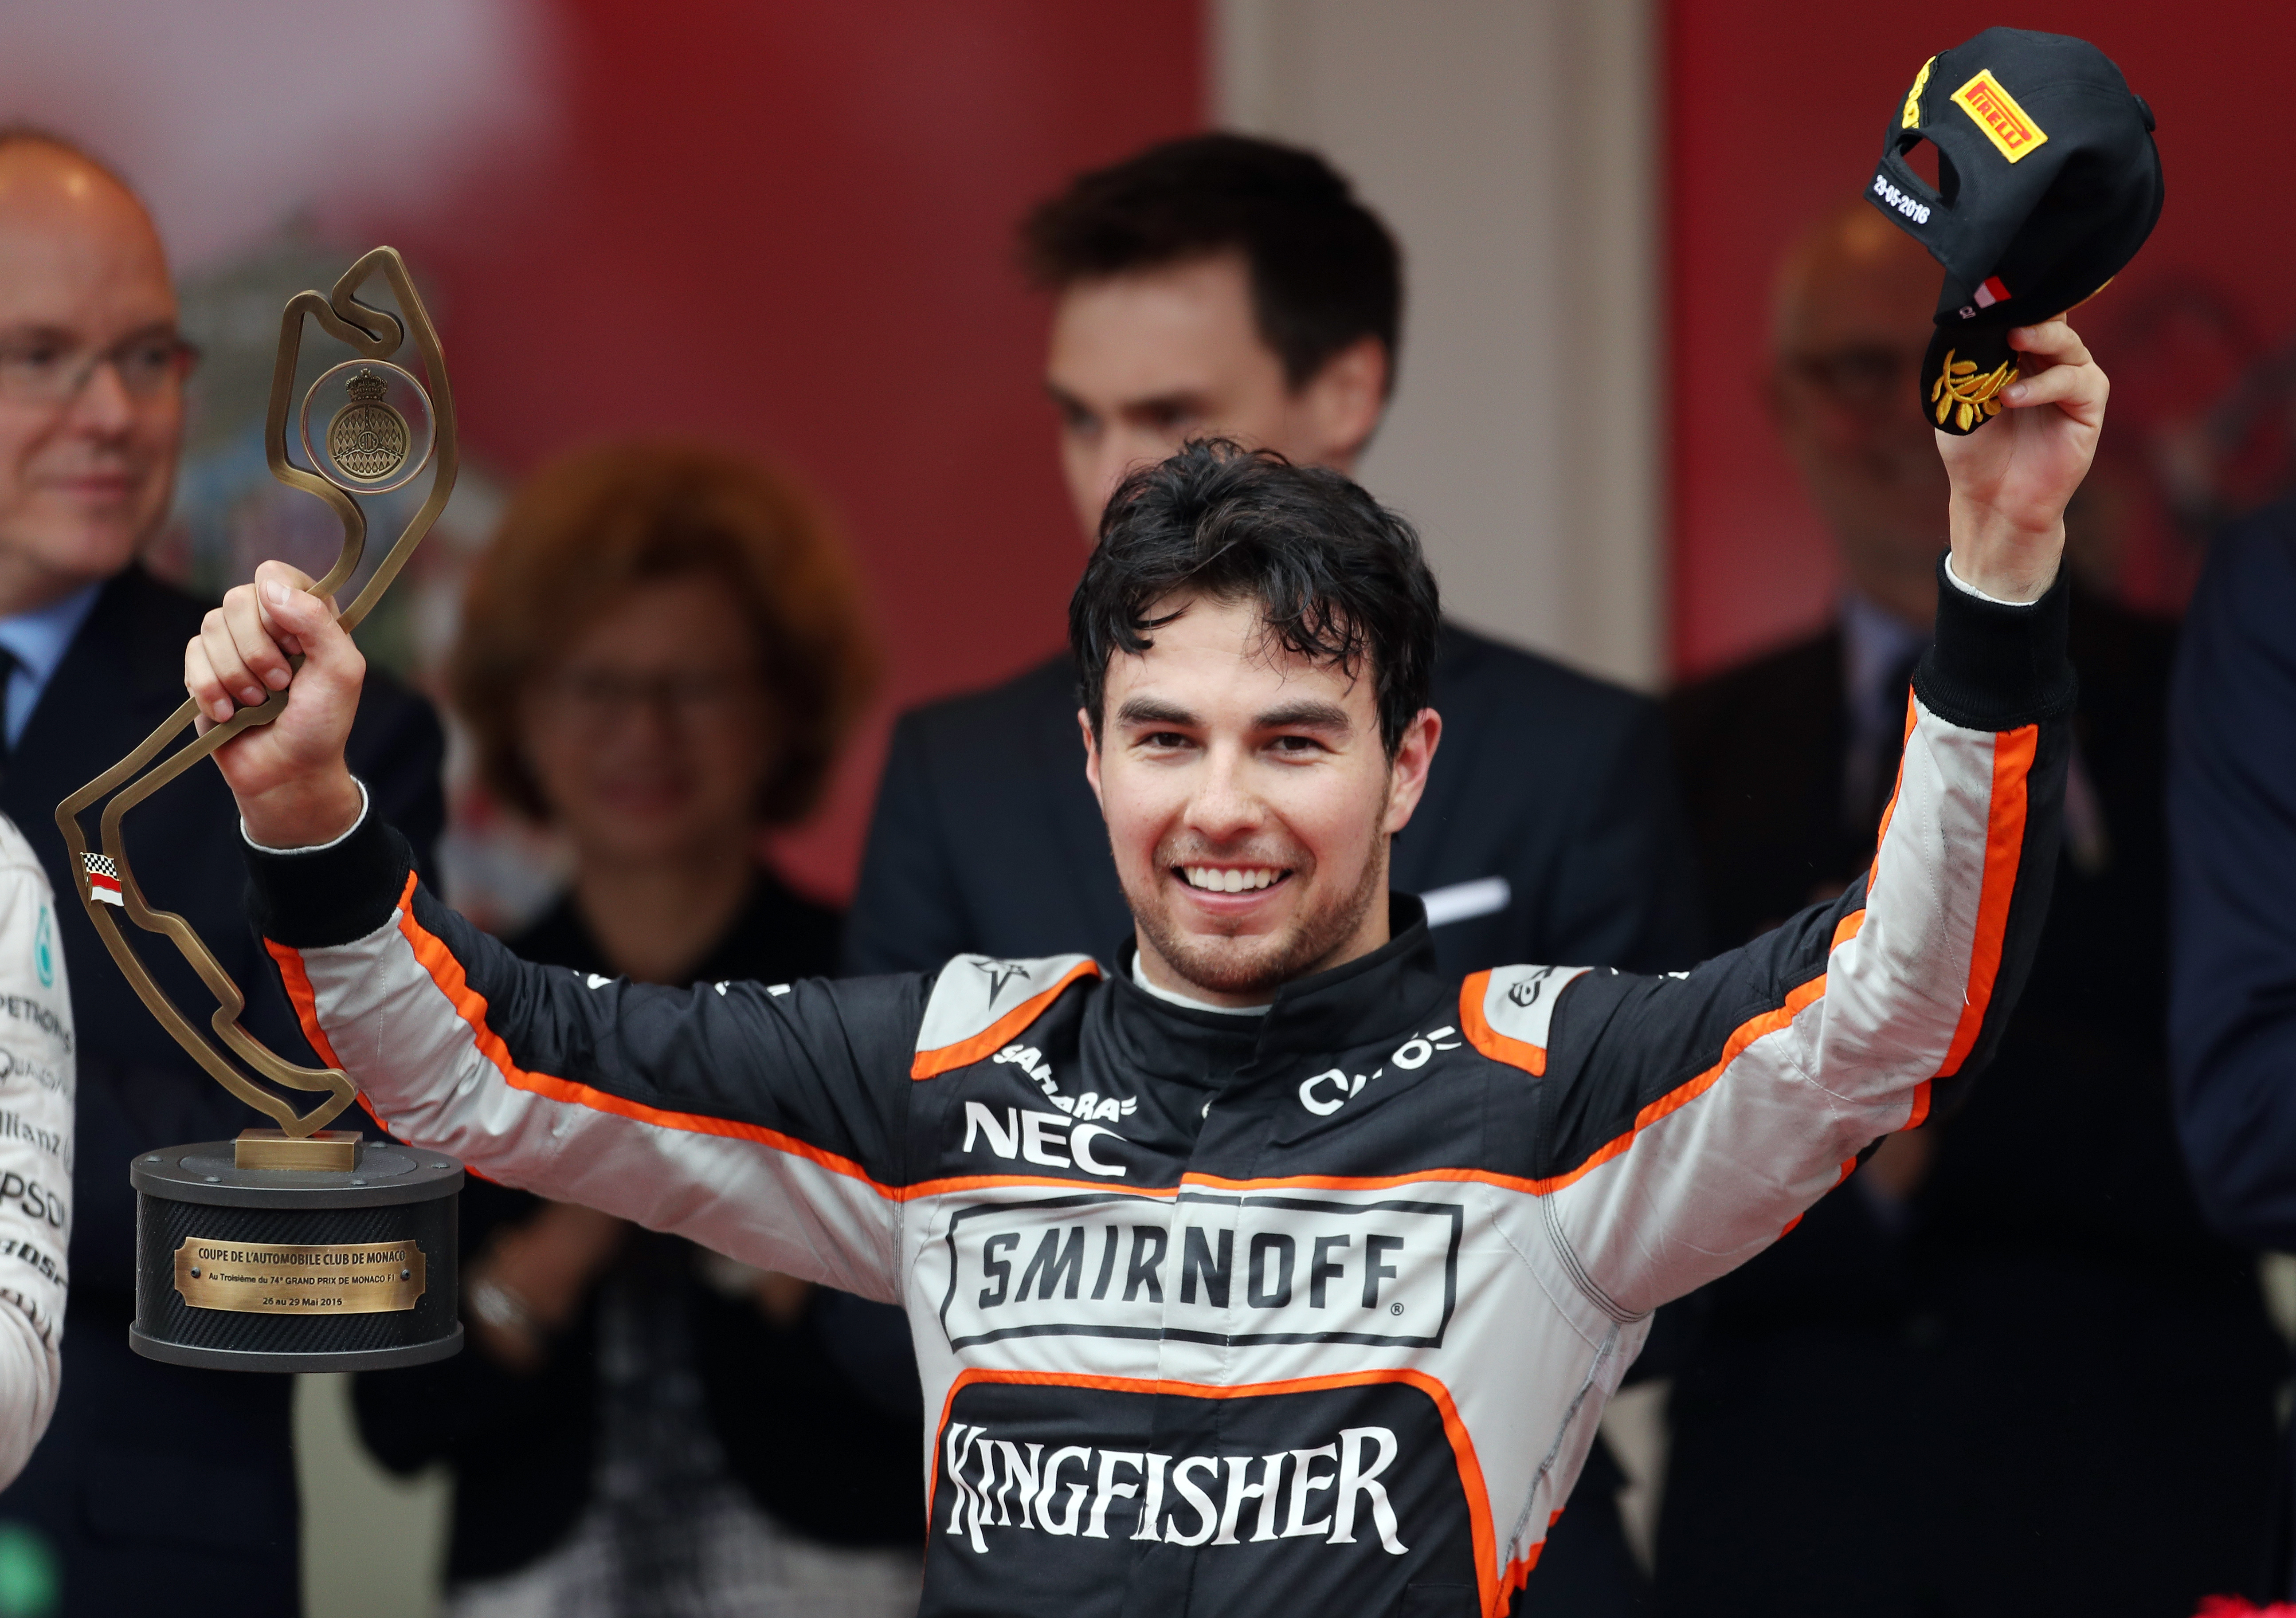 Force India's Sergio Perez celebrates third place in the 2016 Monaco Grand Prix at the Circuit de Monaco, Monaco.